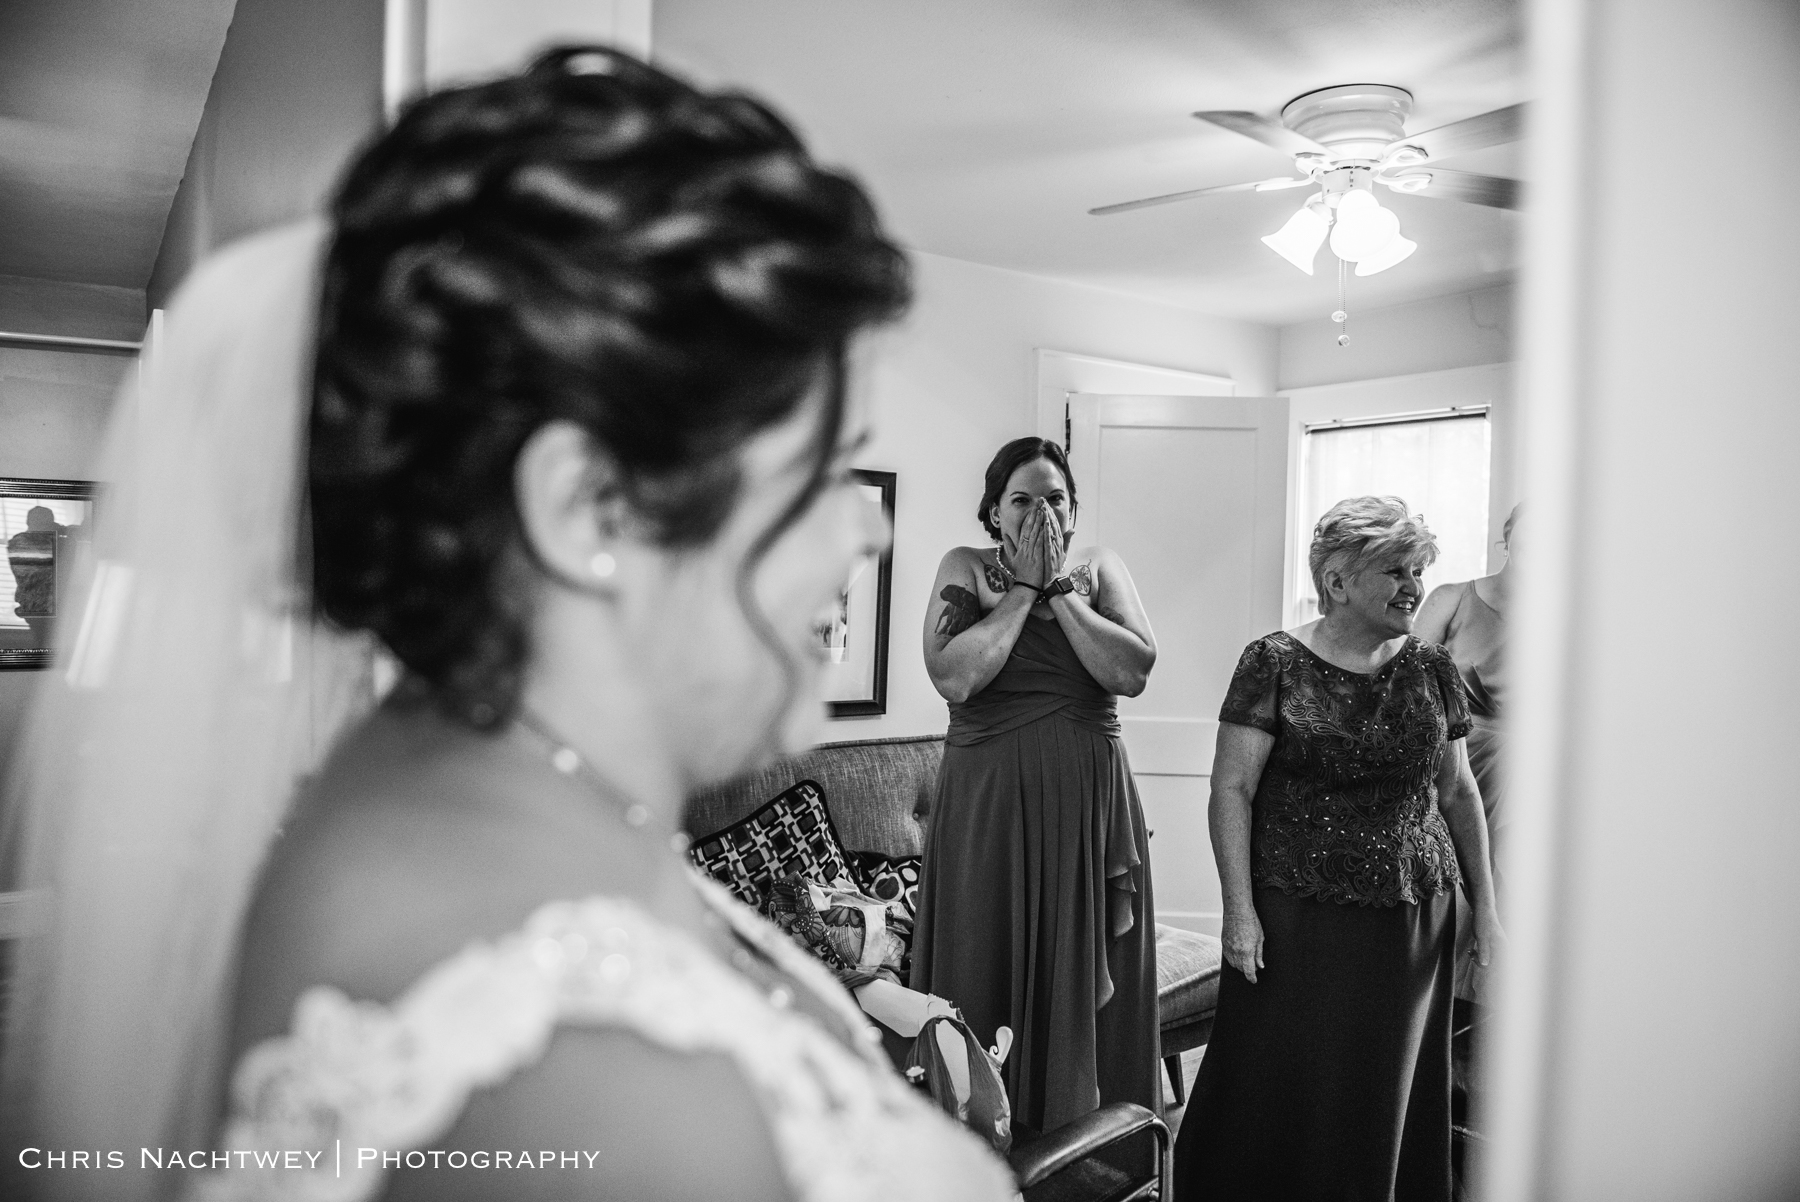 photos-wedding-lighthouse-point-park-carousel-new-haven-chris-nachtwey-photography-2019-7.jpg